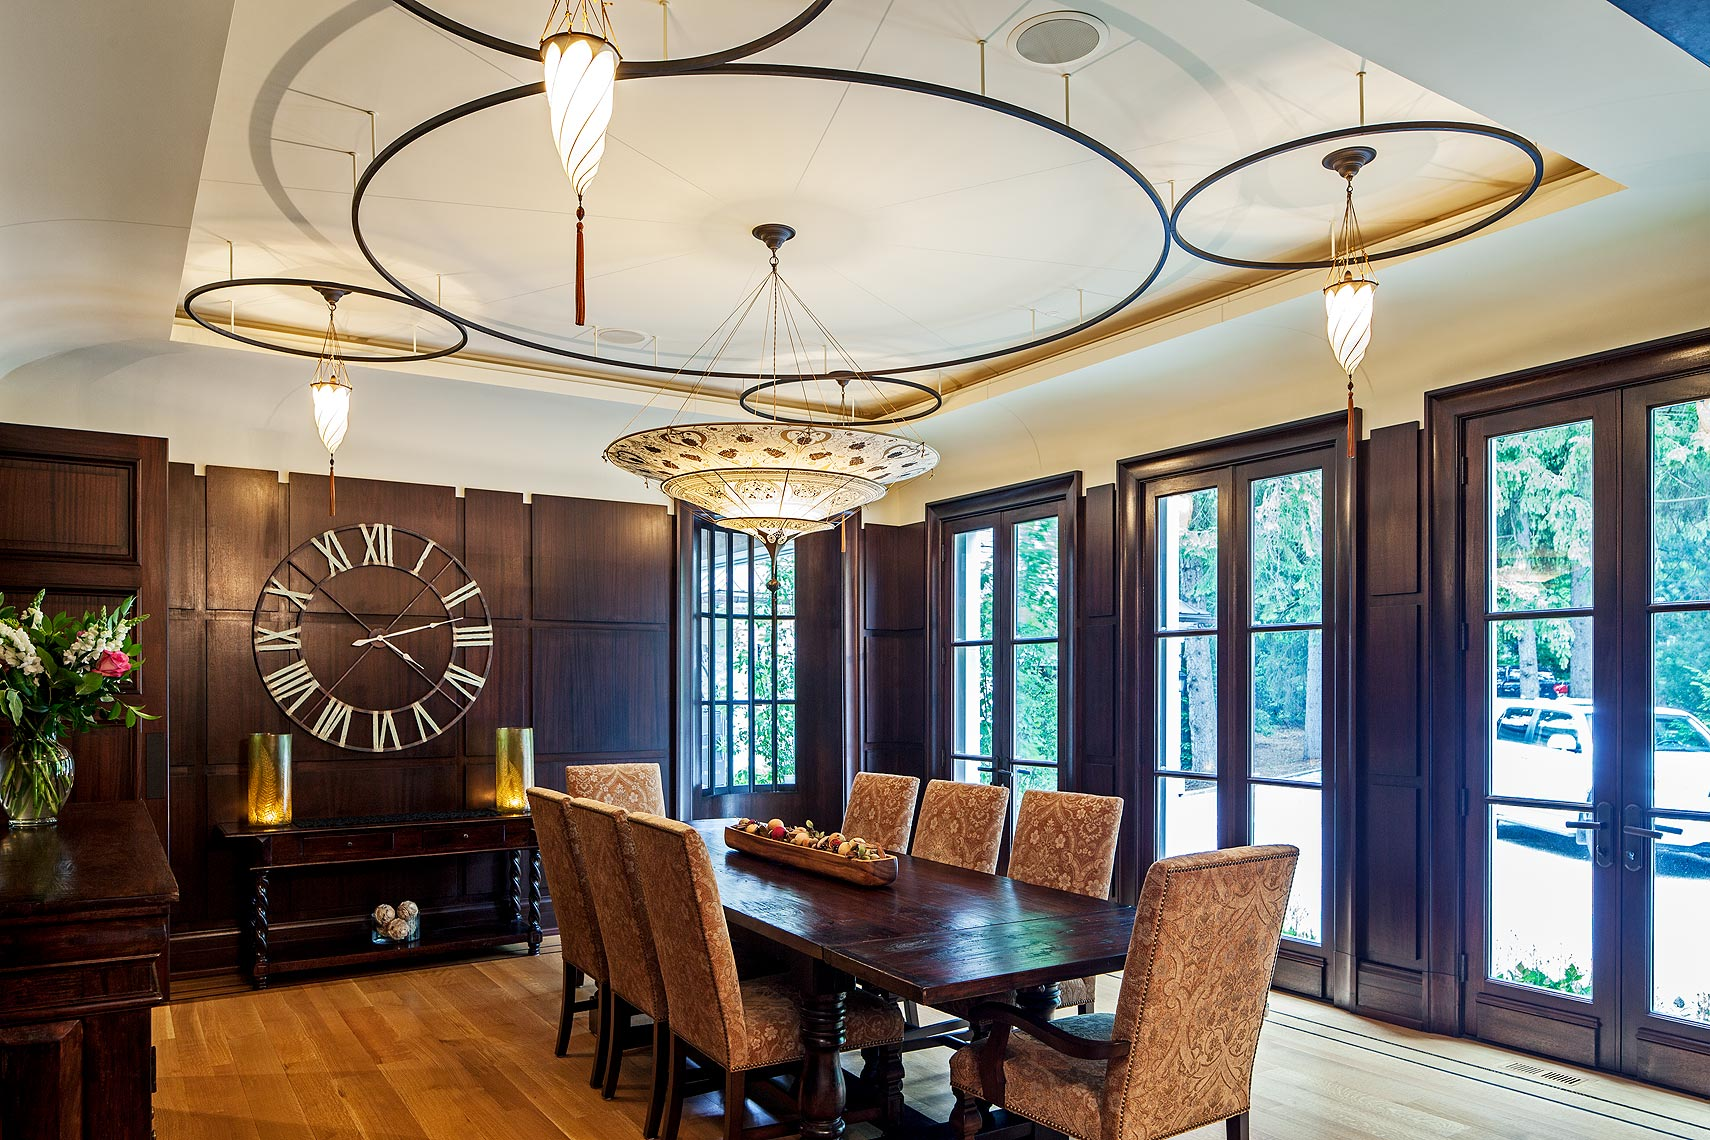 The formal dining room's simple elegance is deceptive; founded as it is on layer upon layer of unusual details. Matching a wall alcove opposite, the D-shaped window on the end wall comprises thermopane lights in an iron frame. The reveal line around the recessed centre panel emphasizes the gentle curve of the sculptural transition to the oval ceiling. In the mahogany wall panels, recessed fixtures in the shortened reveals accentuate the resulting crenellation, while washing the ceiling curve with light. Above, floating iron rings frame the Fortuny silk pendant lamps.